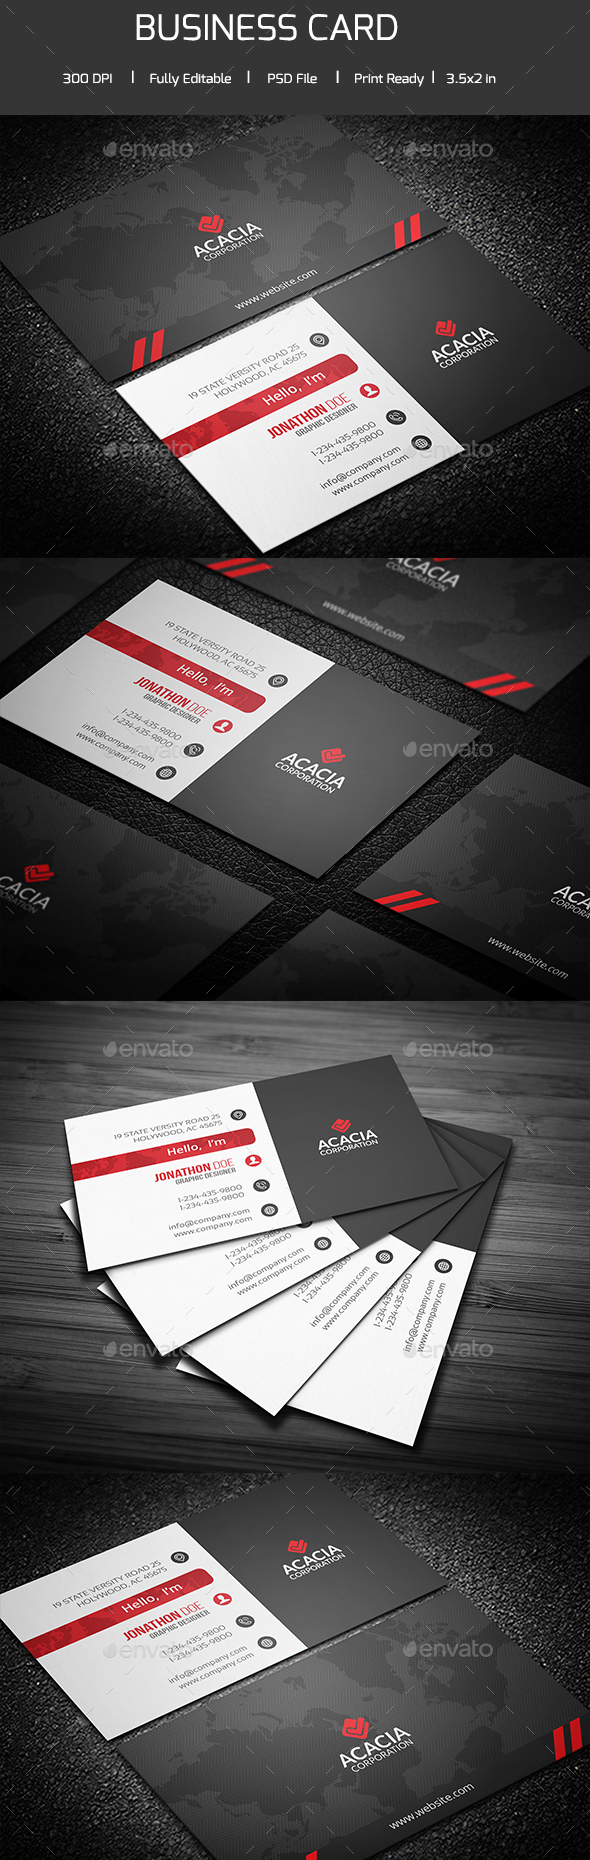 Proxima Business Card - Corporate Business Cards